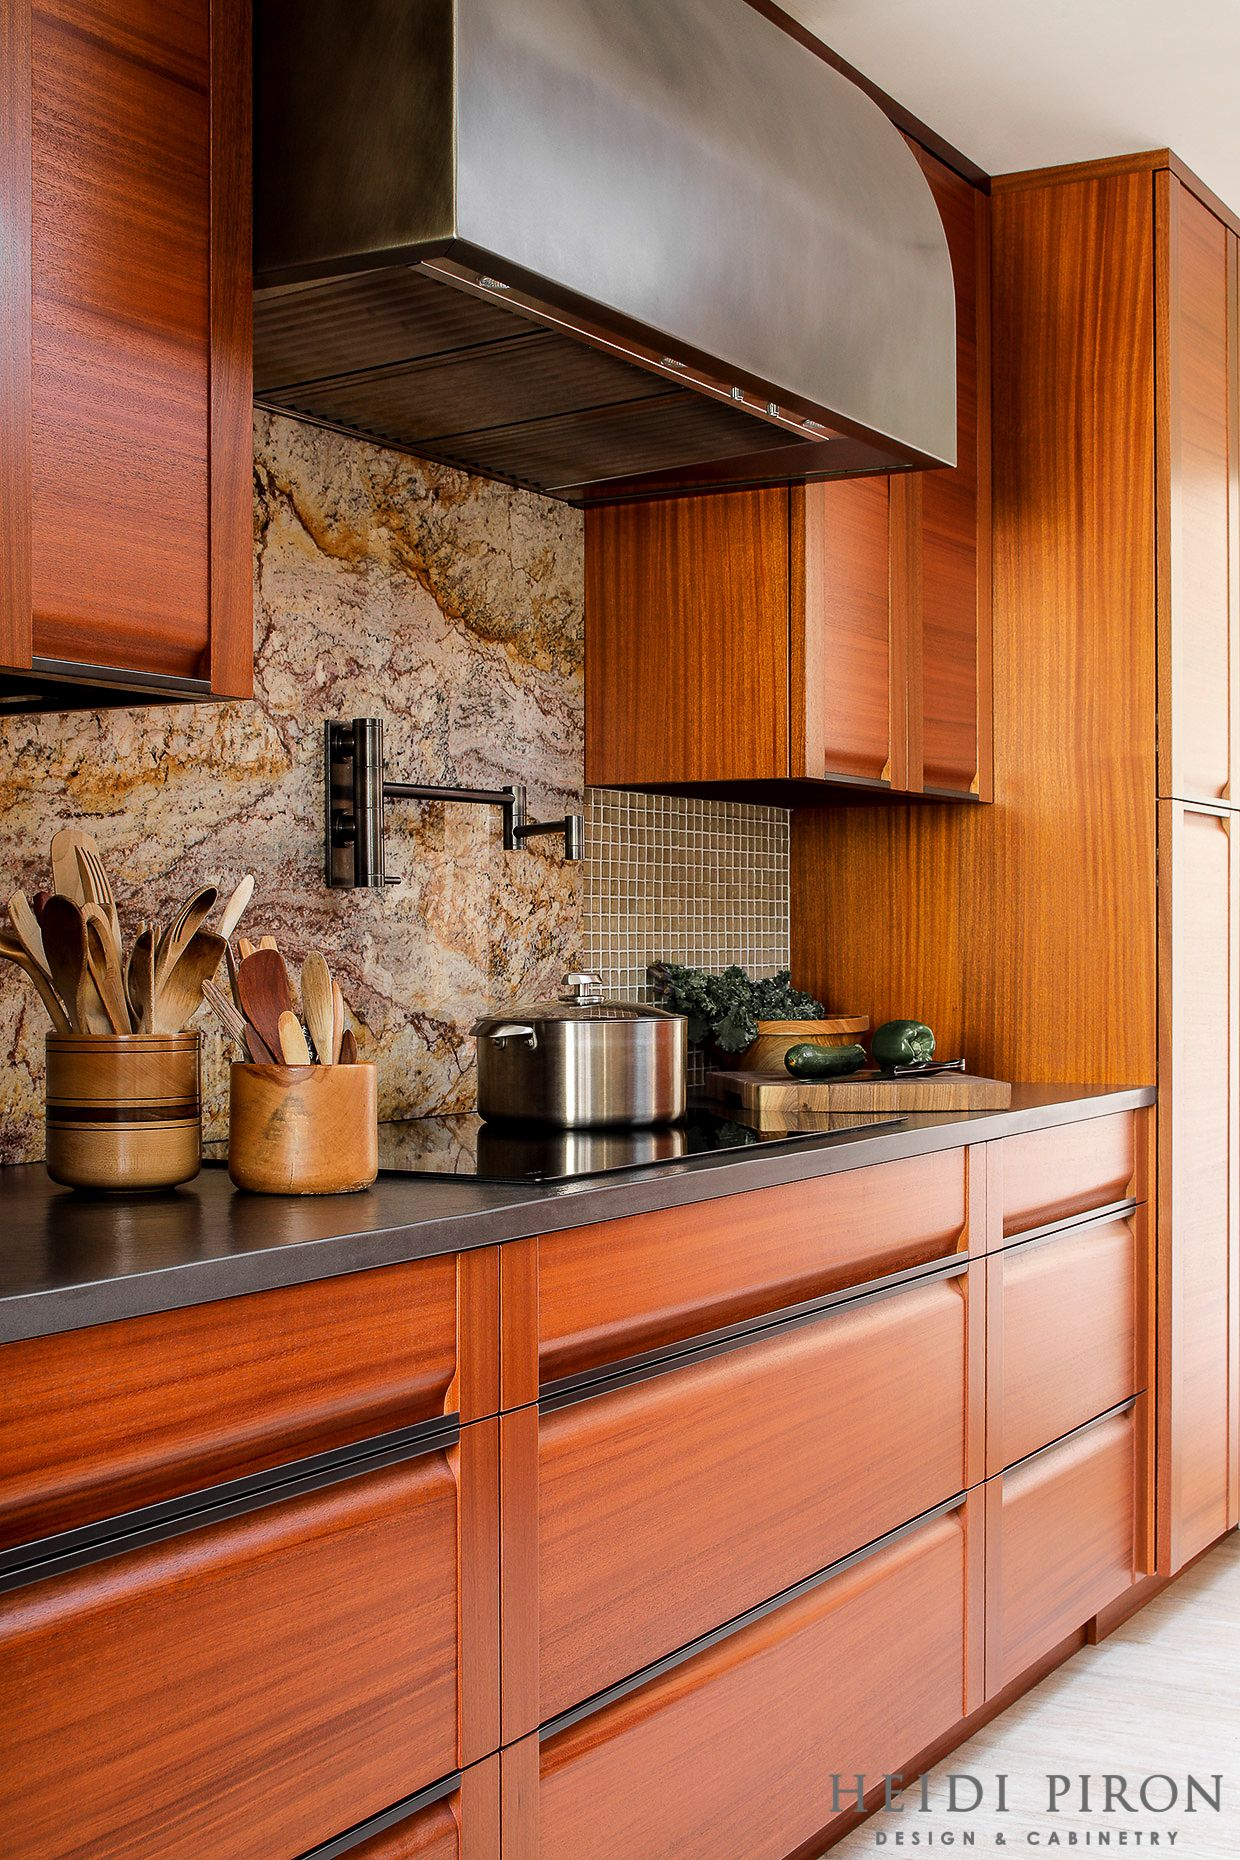 Contemporary (With images) | Award winning kitchen ...